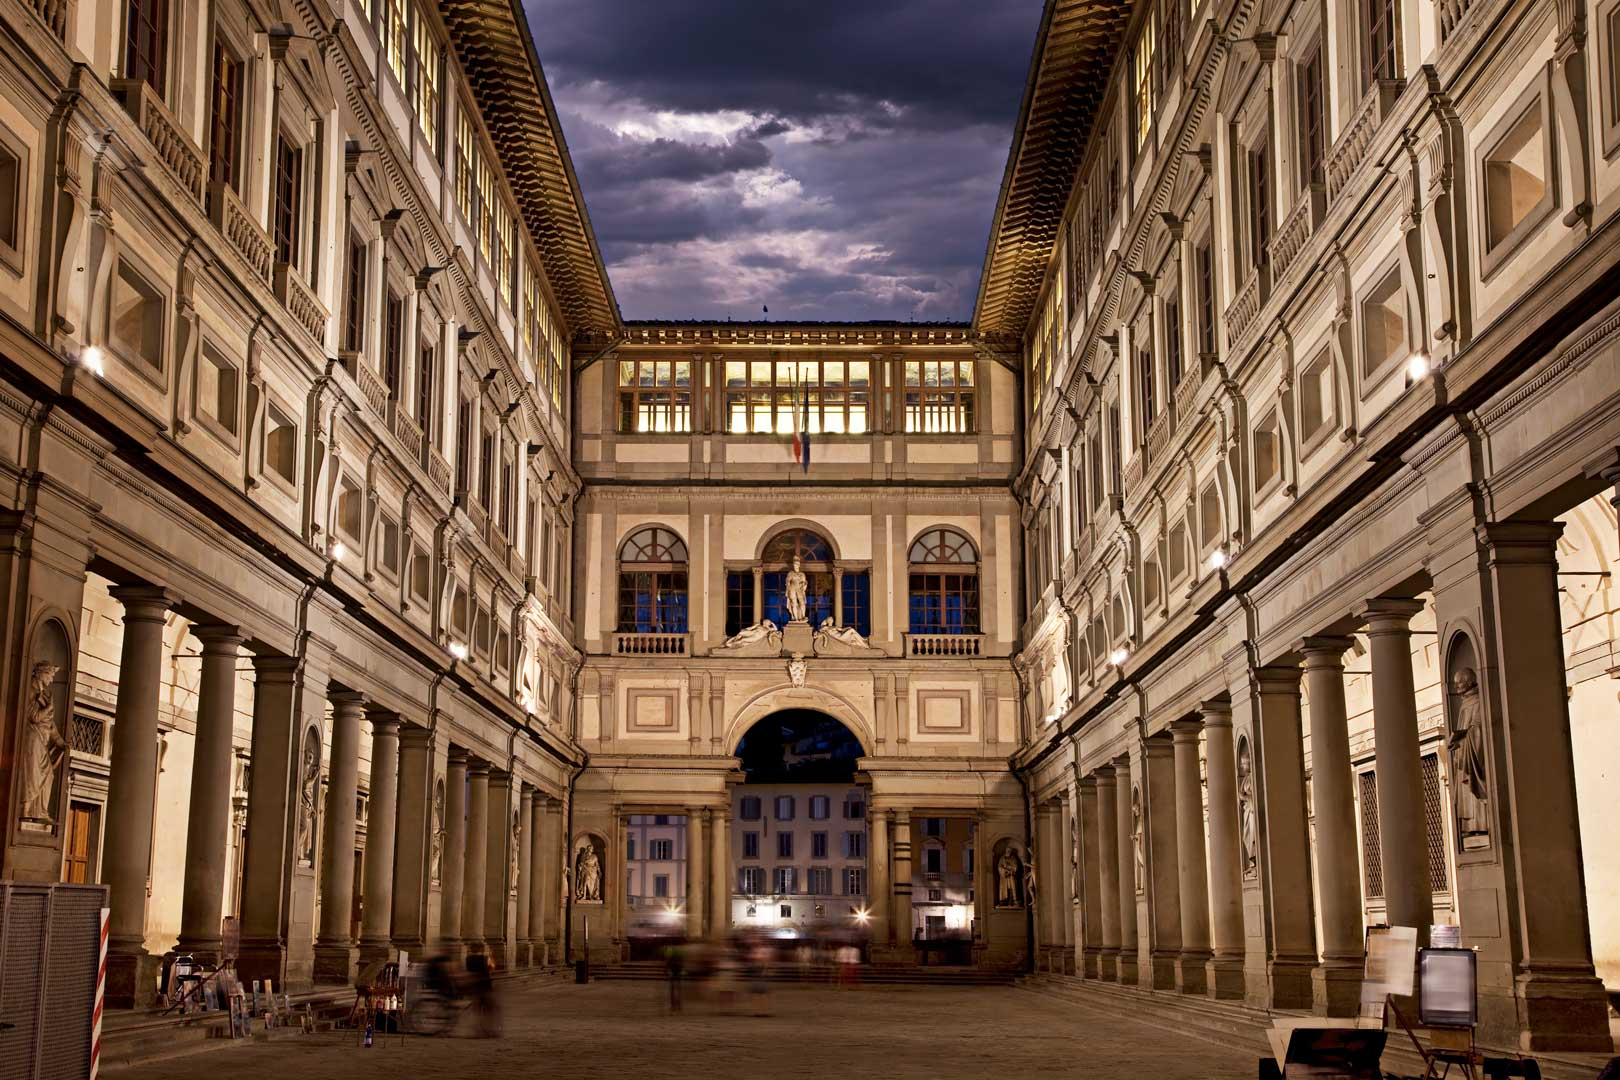 Photo of 'La Galleria degli Uffizi' in Firenze